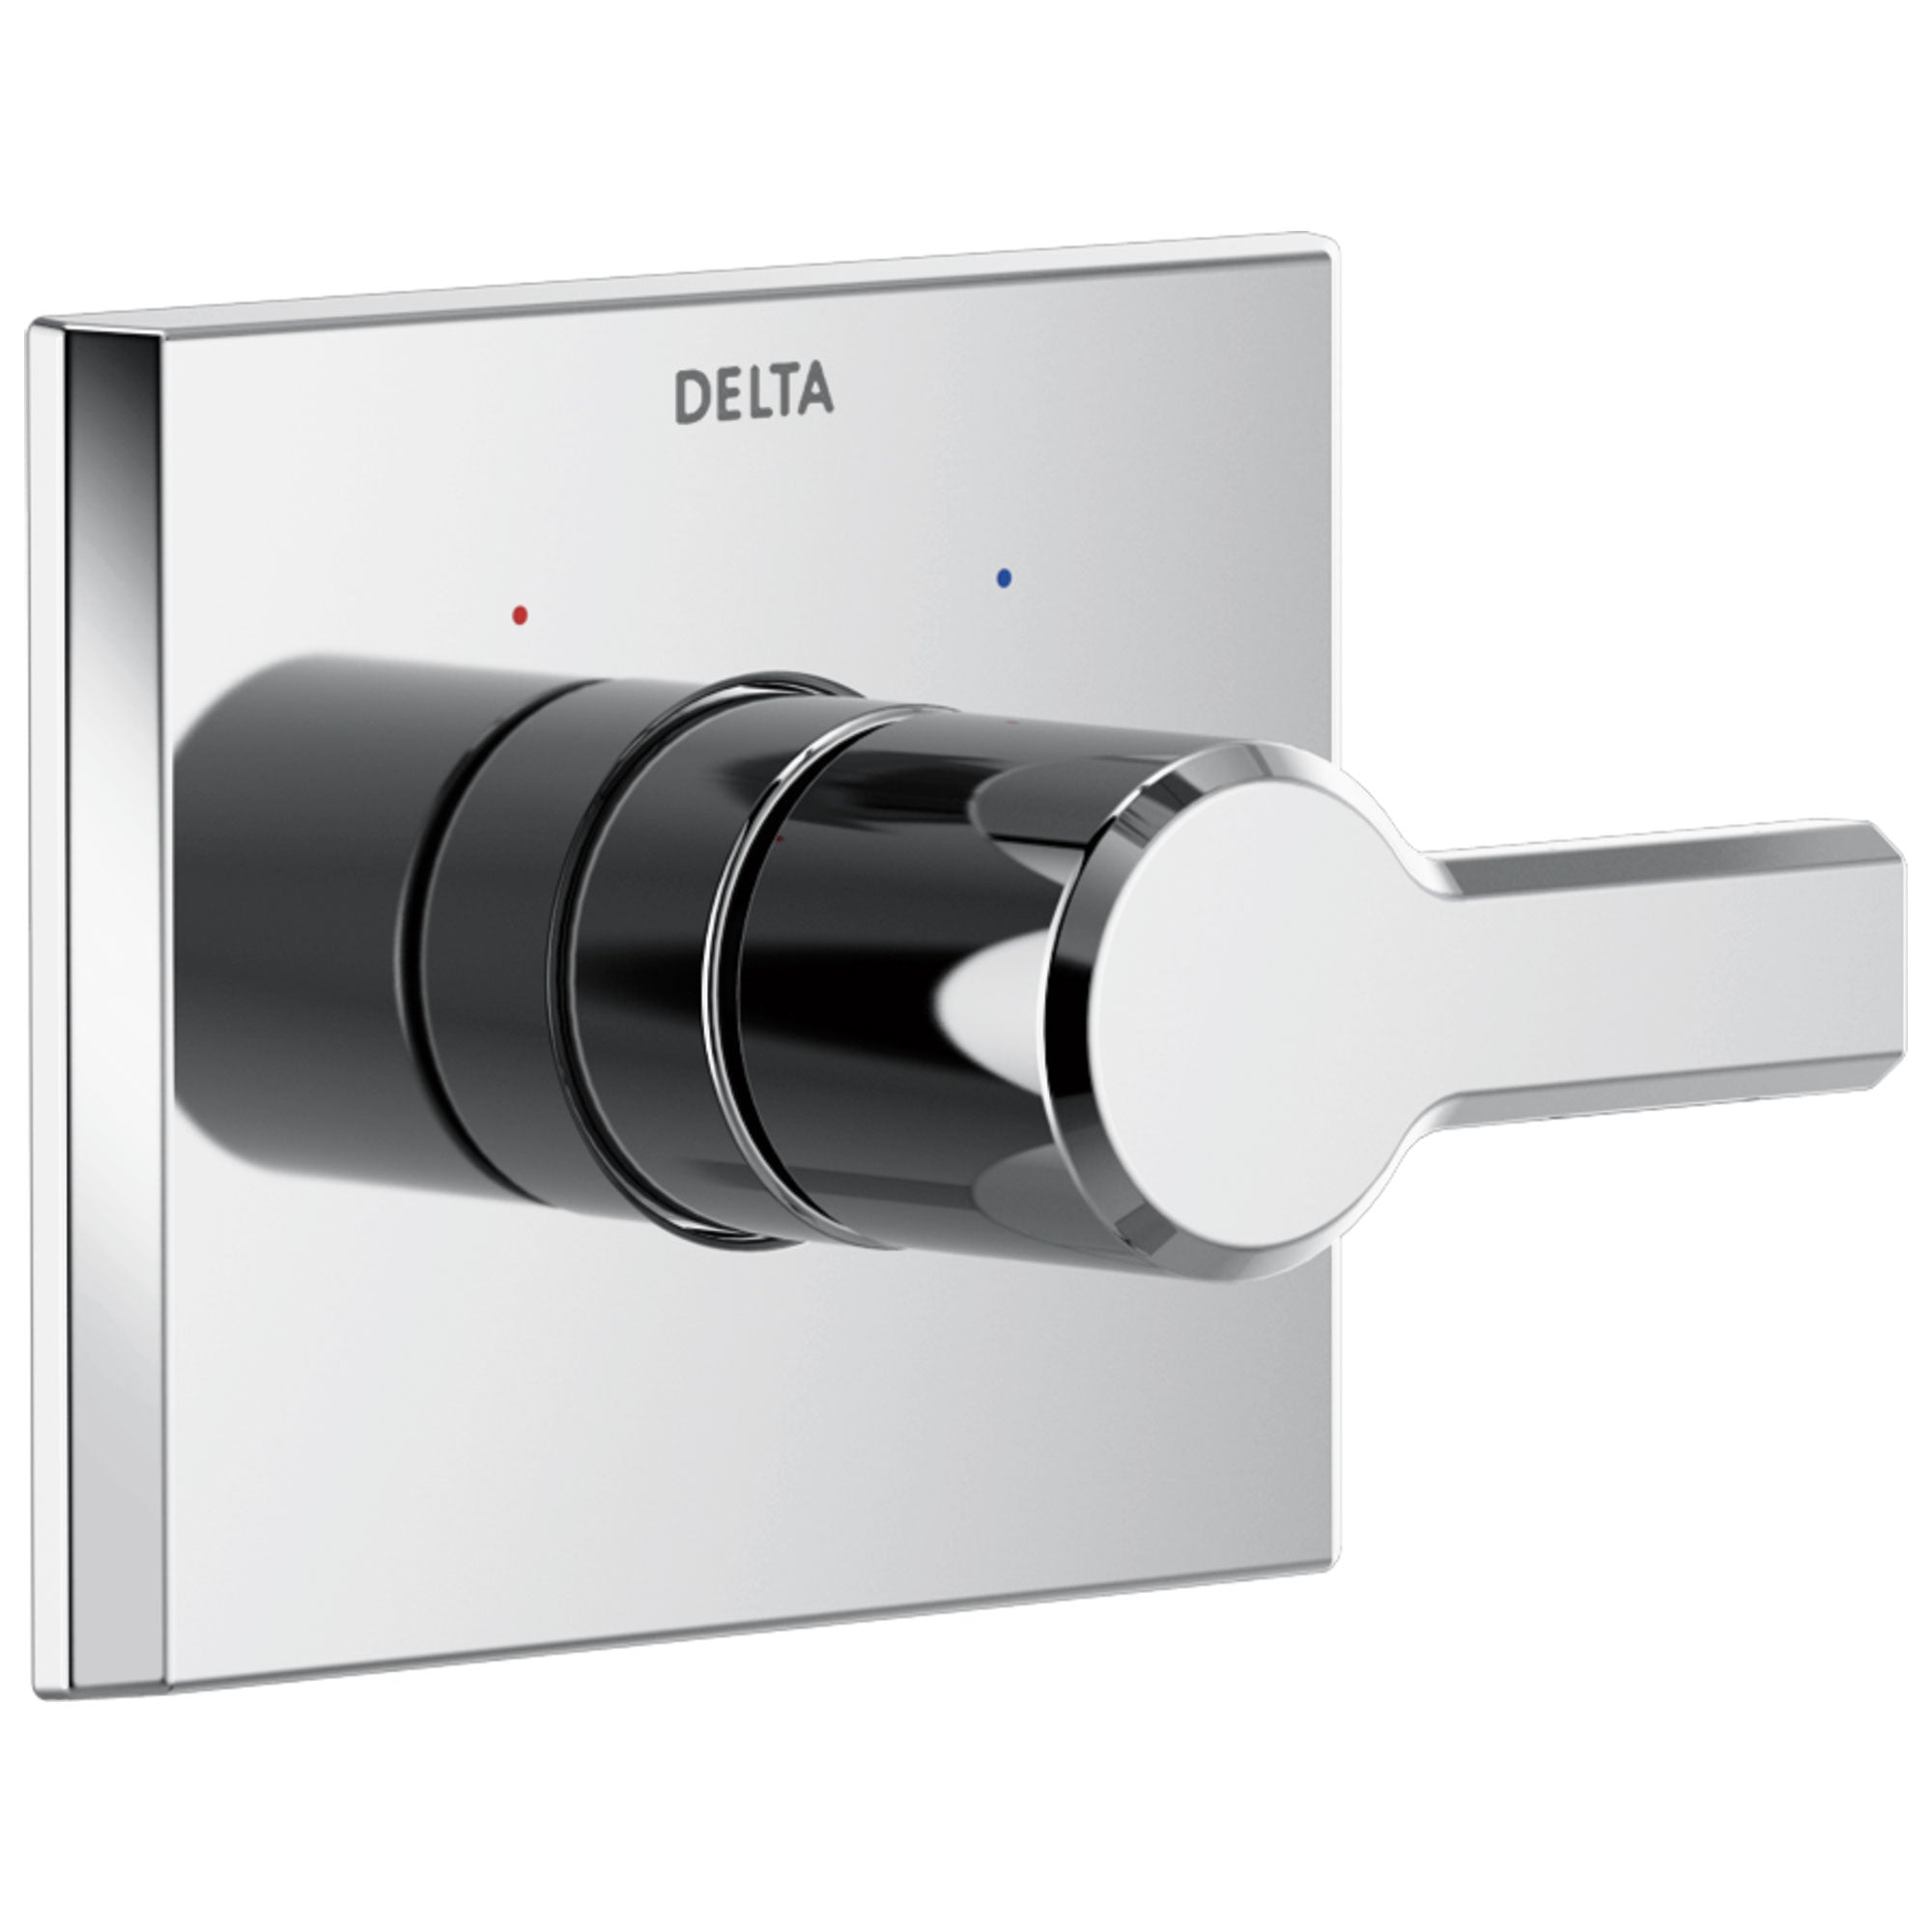 Delta Pivotal Chrome Finish Monitor 14 Series Single Handle Shower Faucet Control Only Includes Cartridge and Valve without Stops D3531V